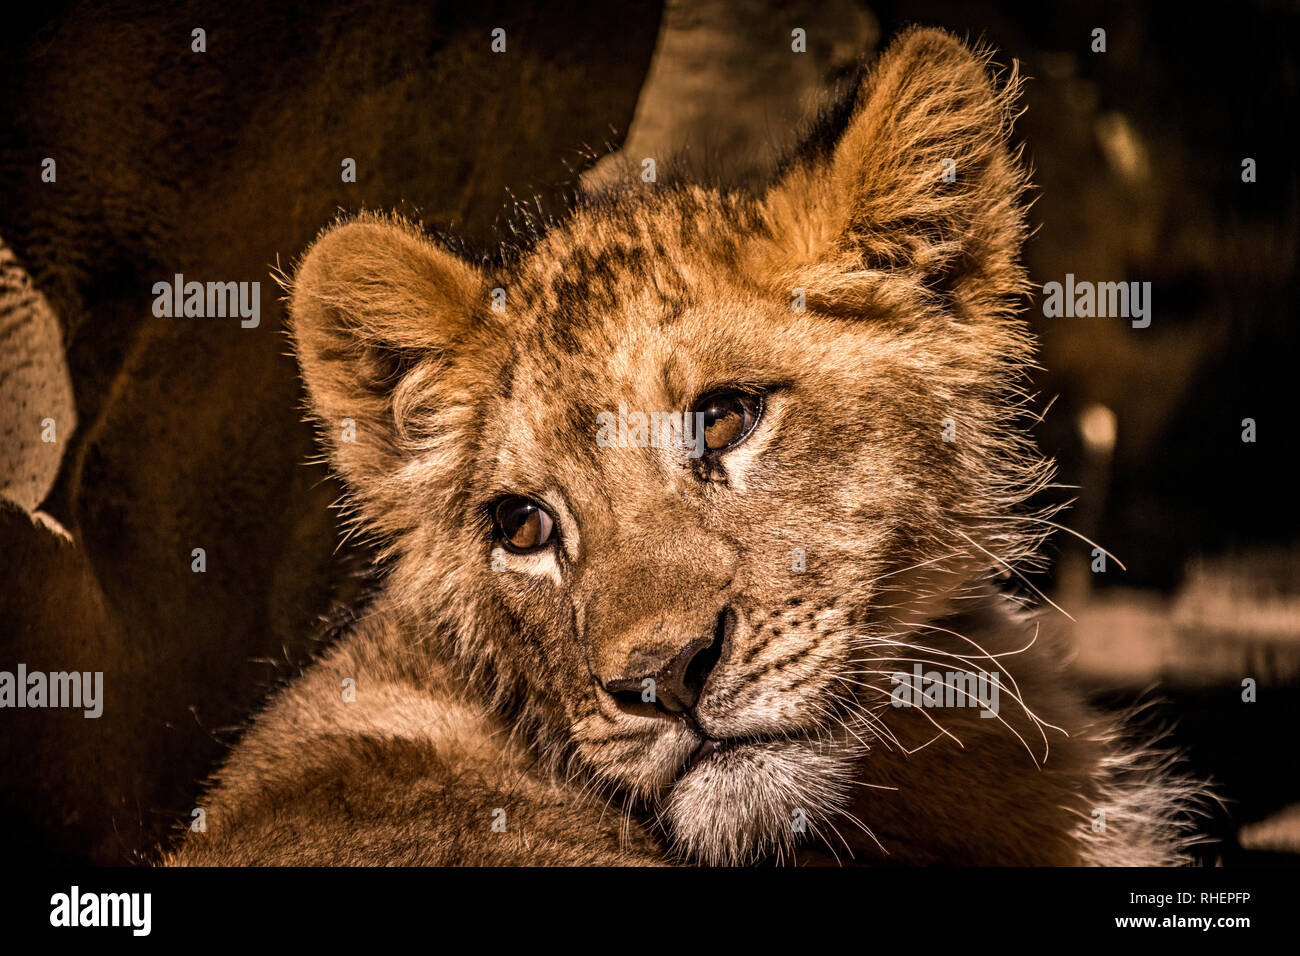 an amazing photo of a curious baby lion cub posing for a great portrait shot Stock Photo